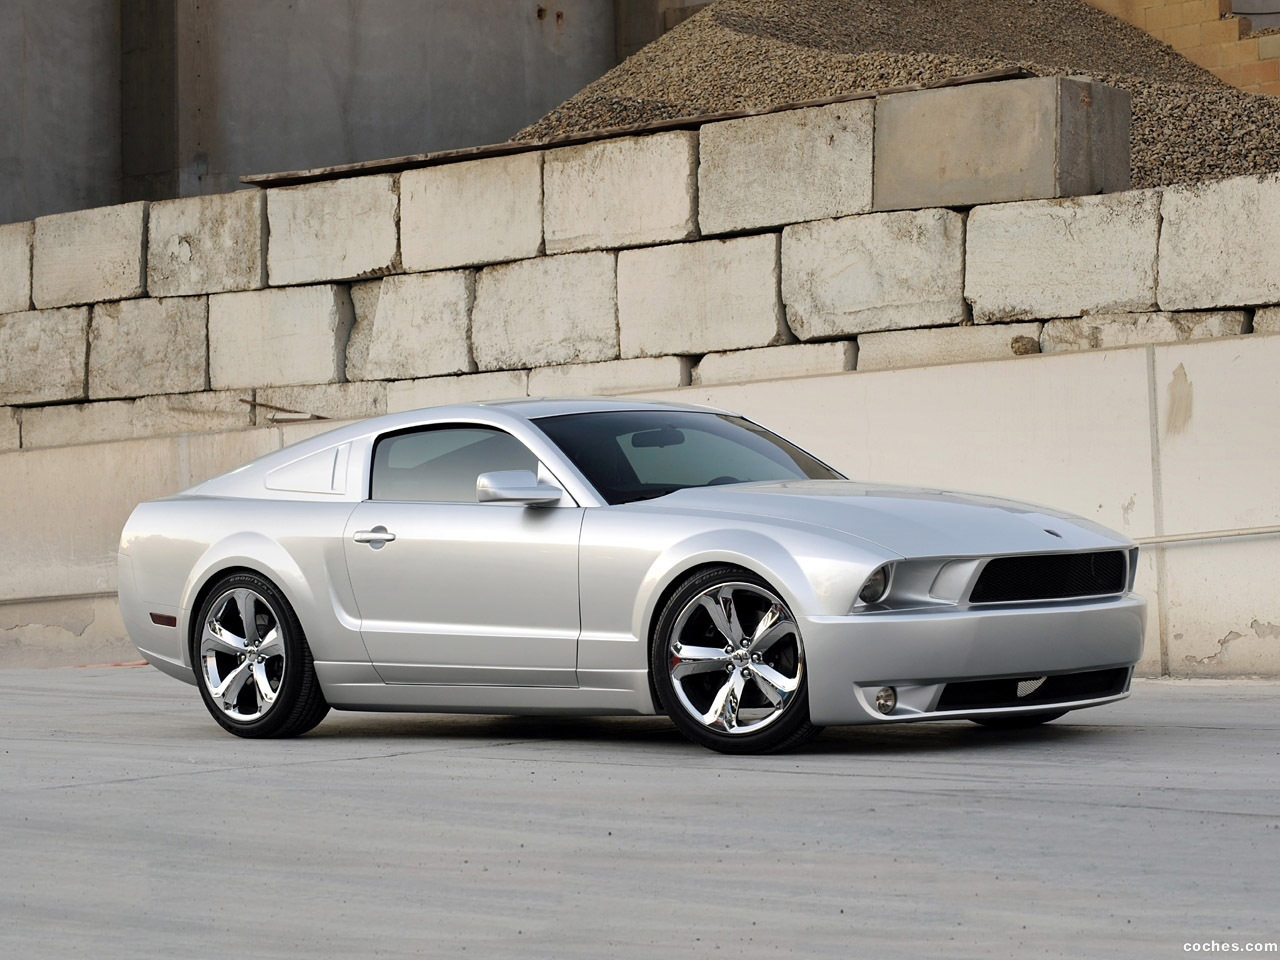 Foto 0 de Ford Mustang Iacocca 45th Anniversary Silver Edition 2009